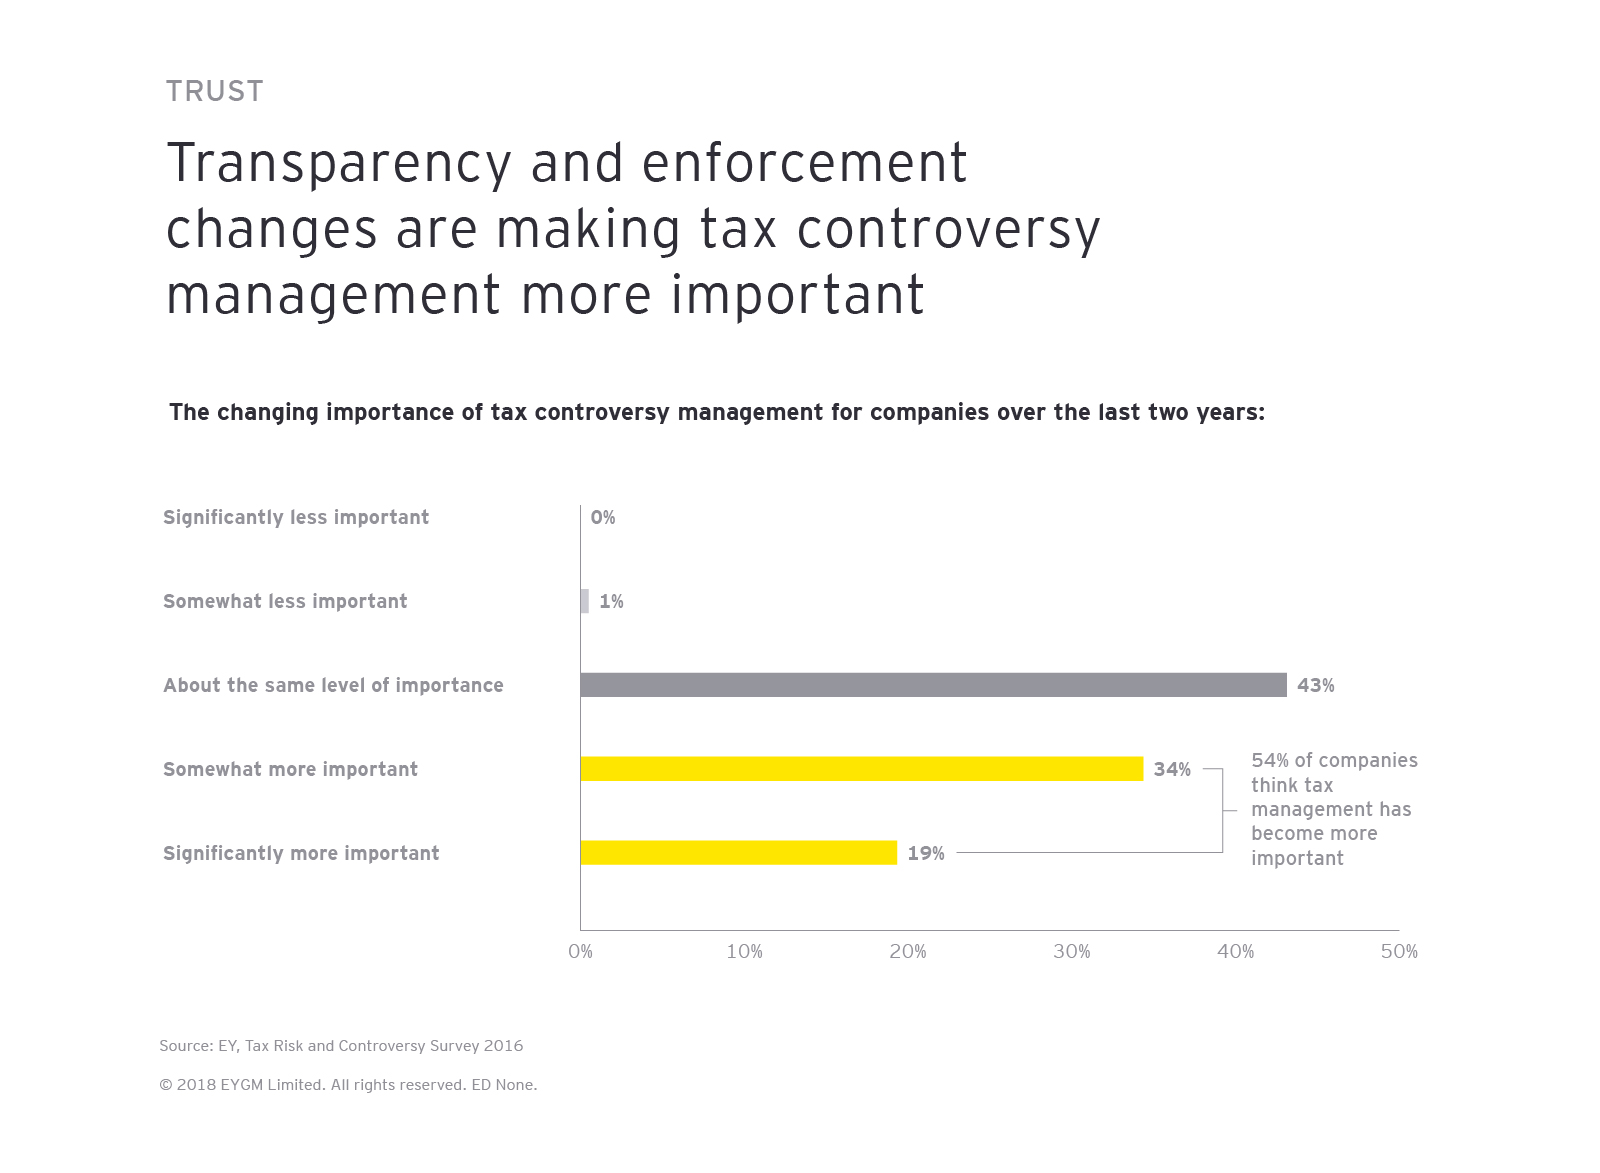 Transparency and enforcement changes are making tax controversy management more important